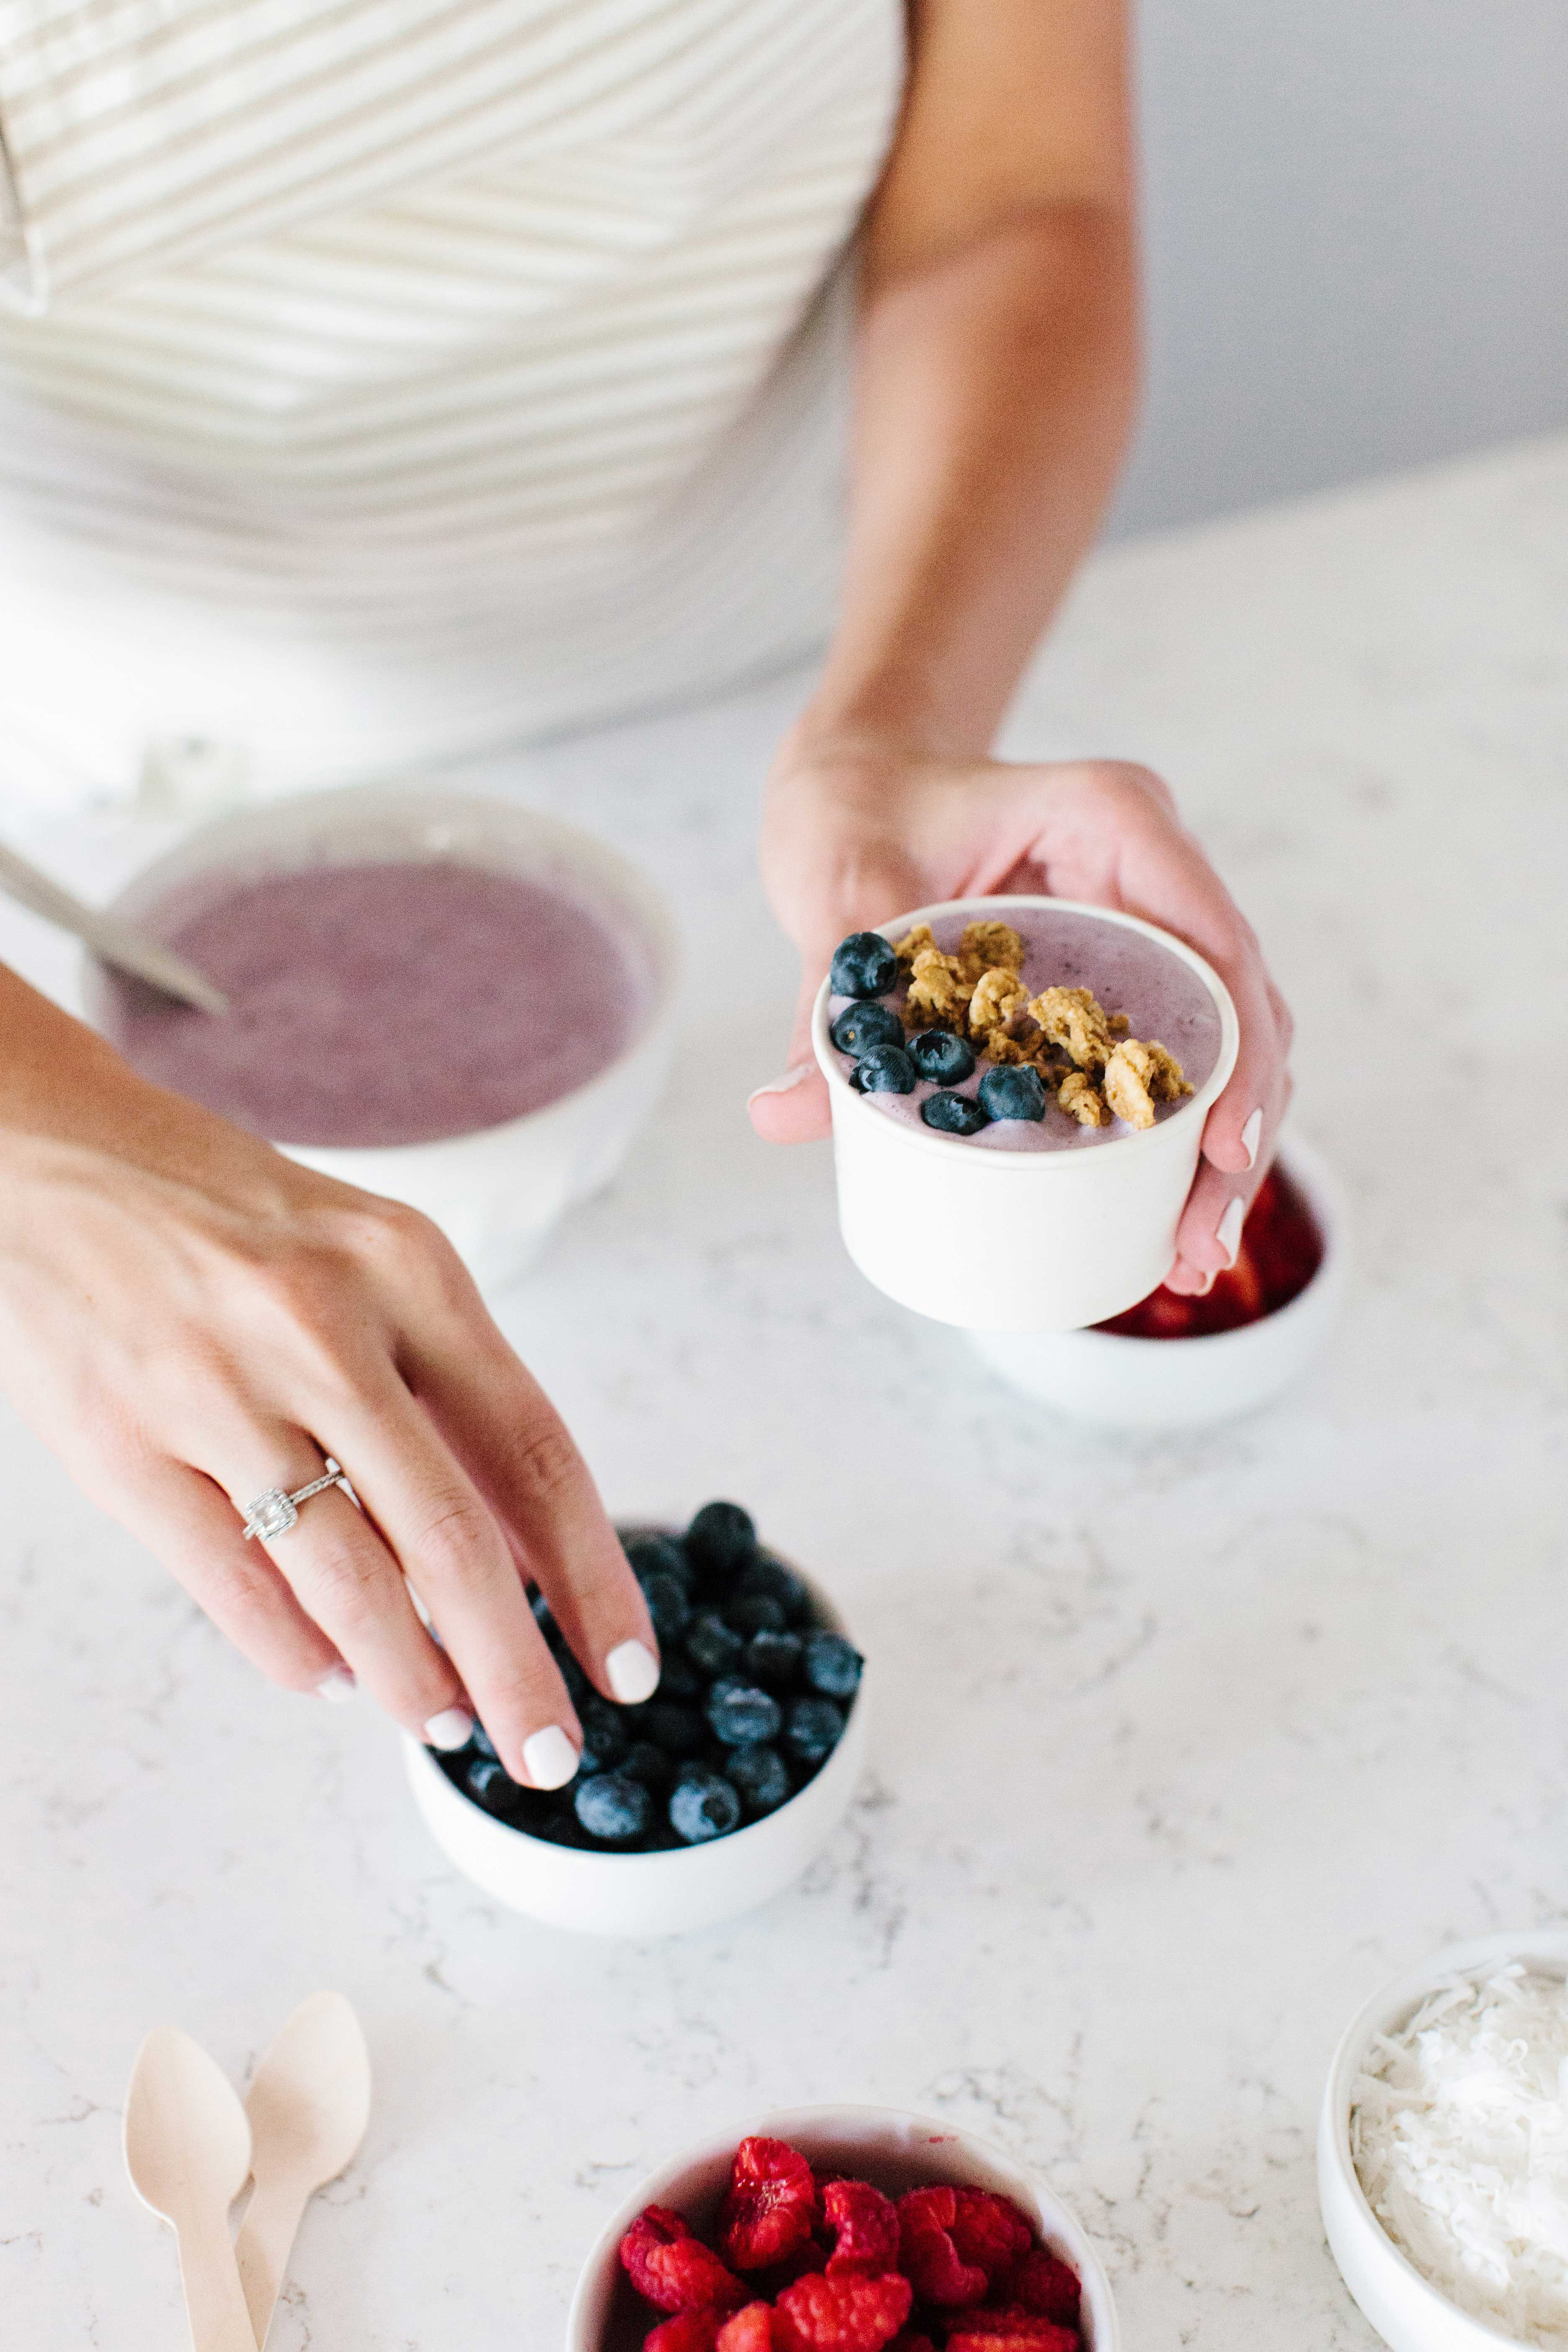 Woman with white manicure making smoothie bowls in kitchen